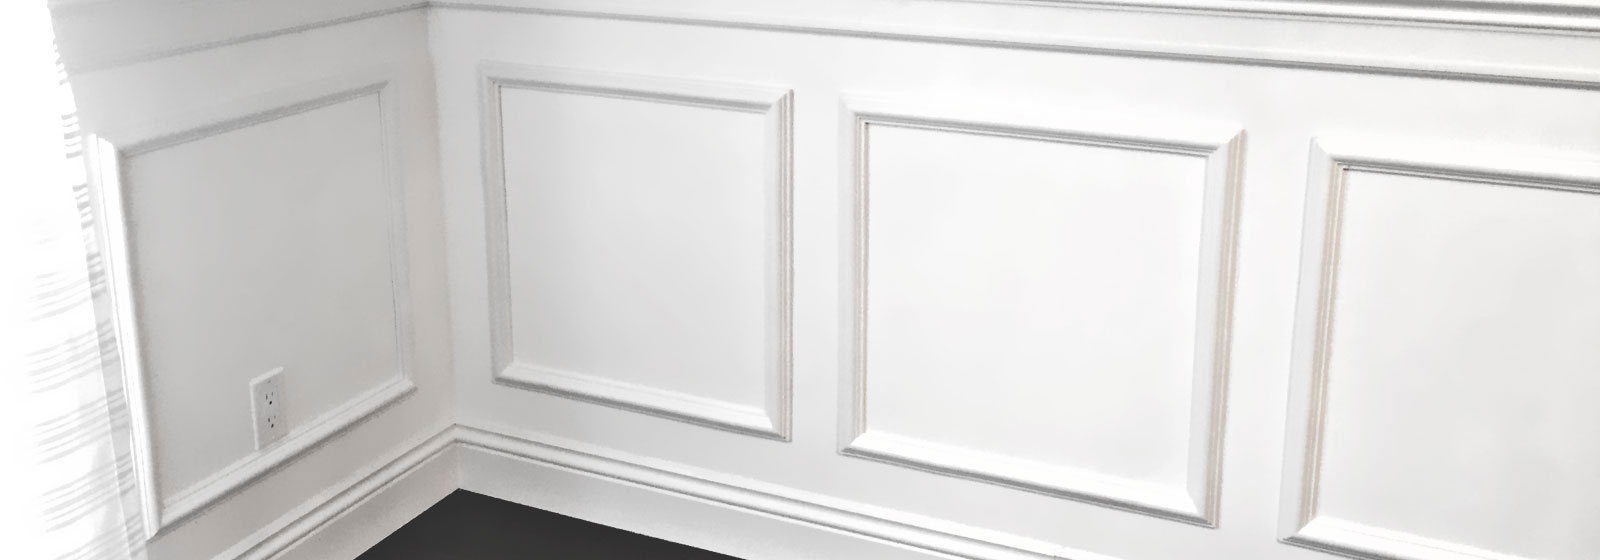 white bathroom wall panels wall panel wainscotting wainscot 21486